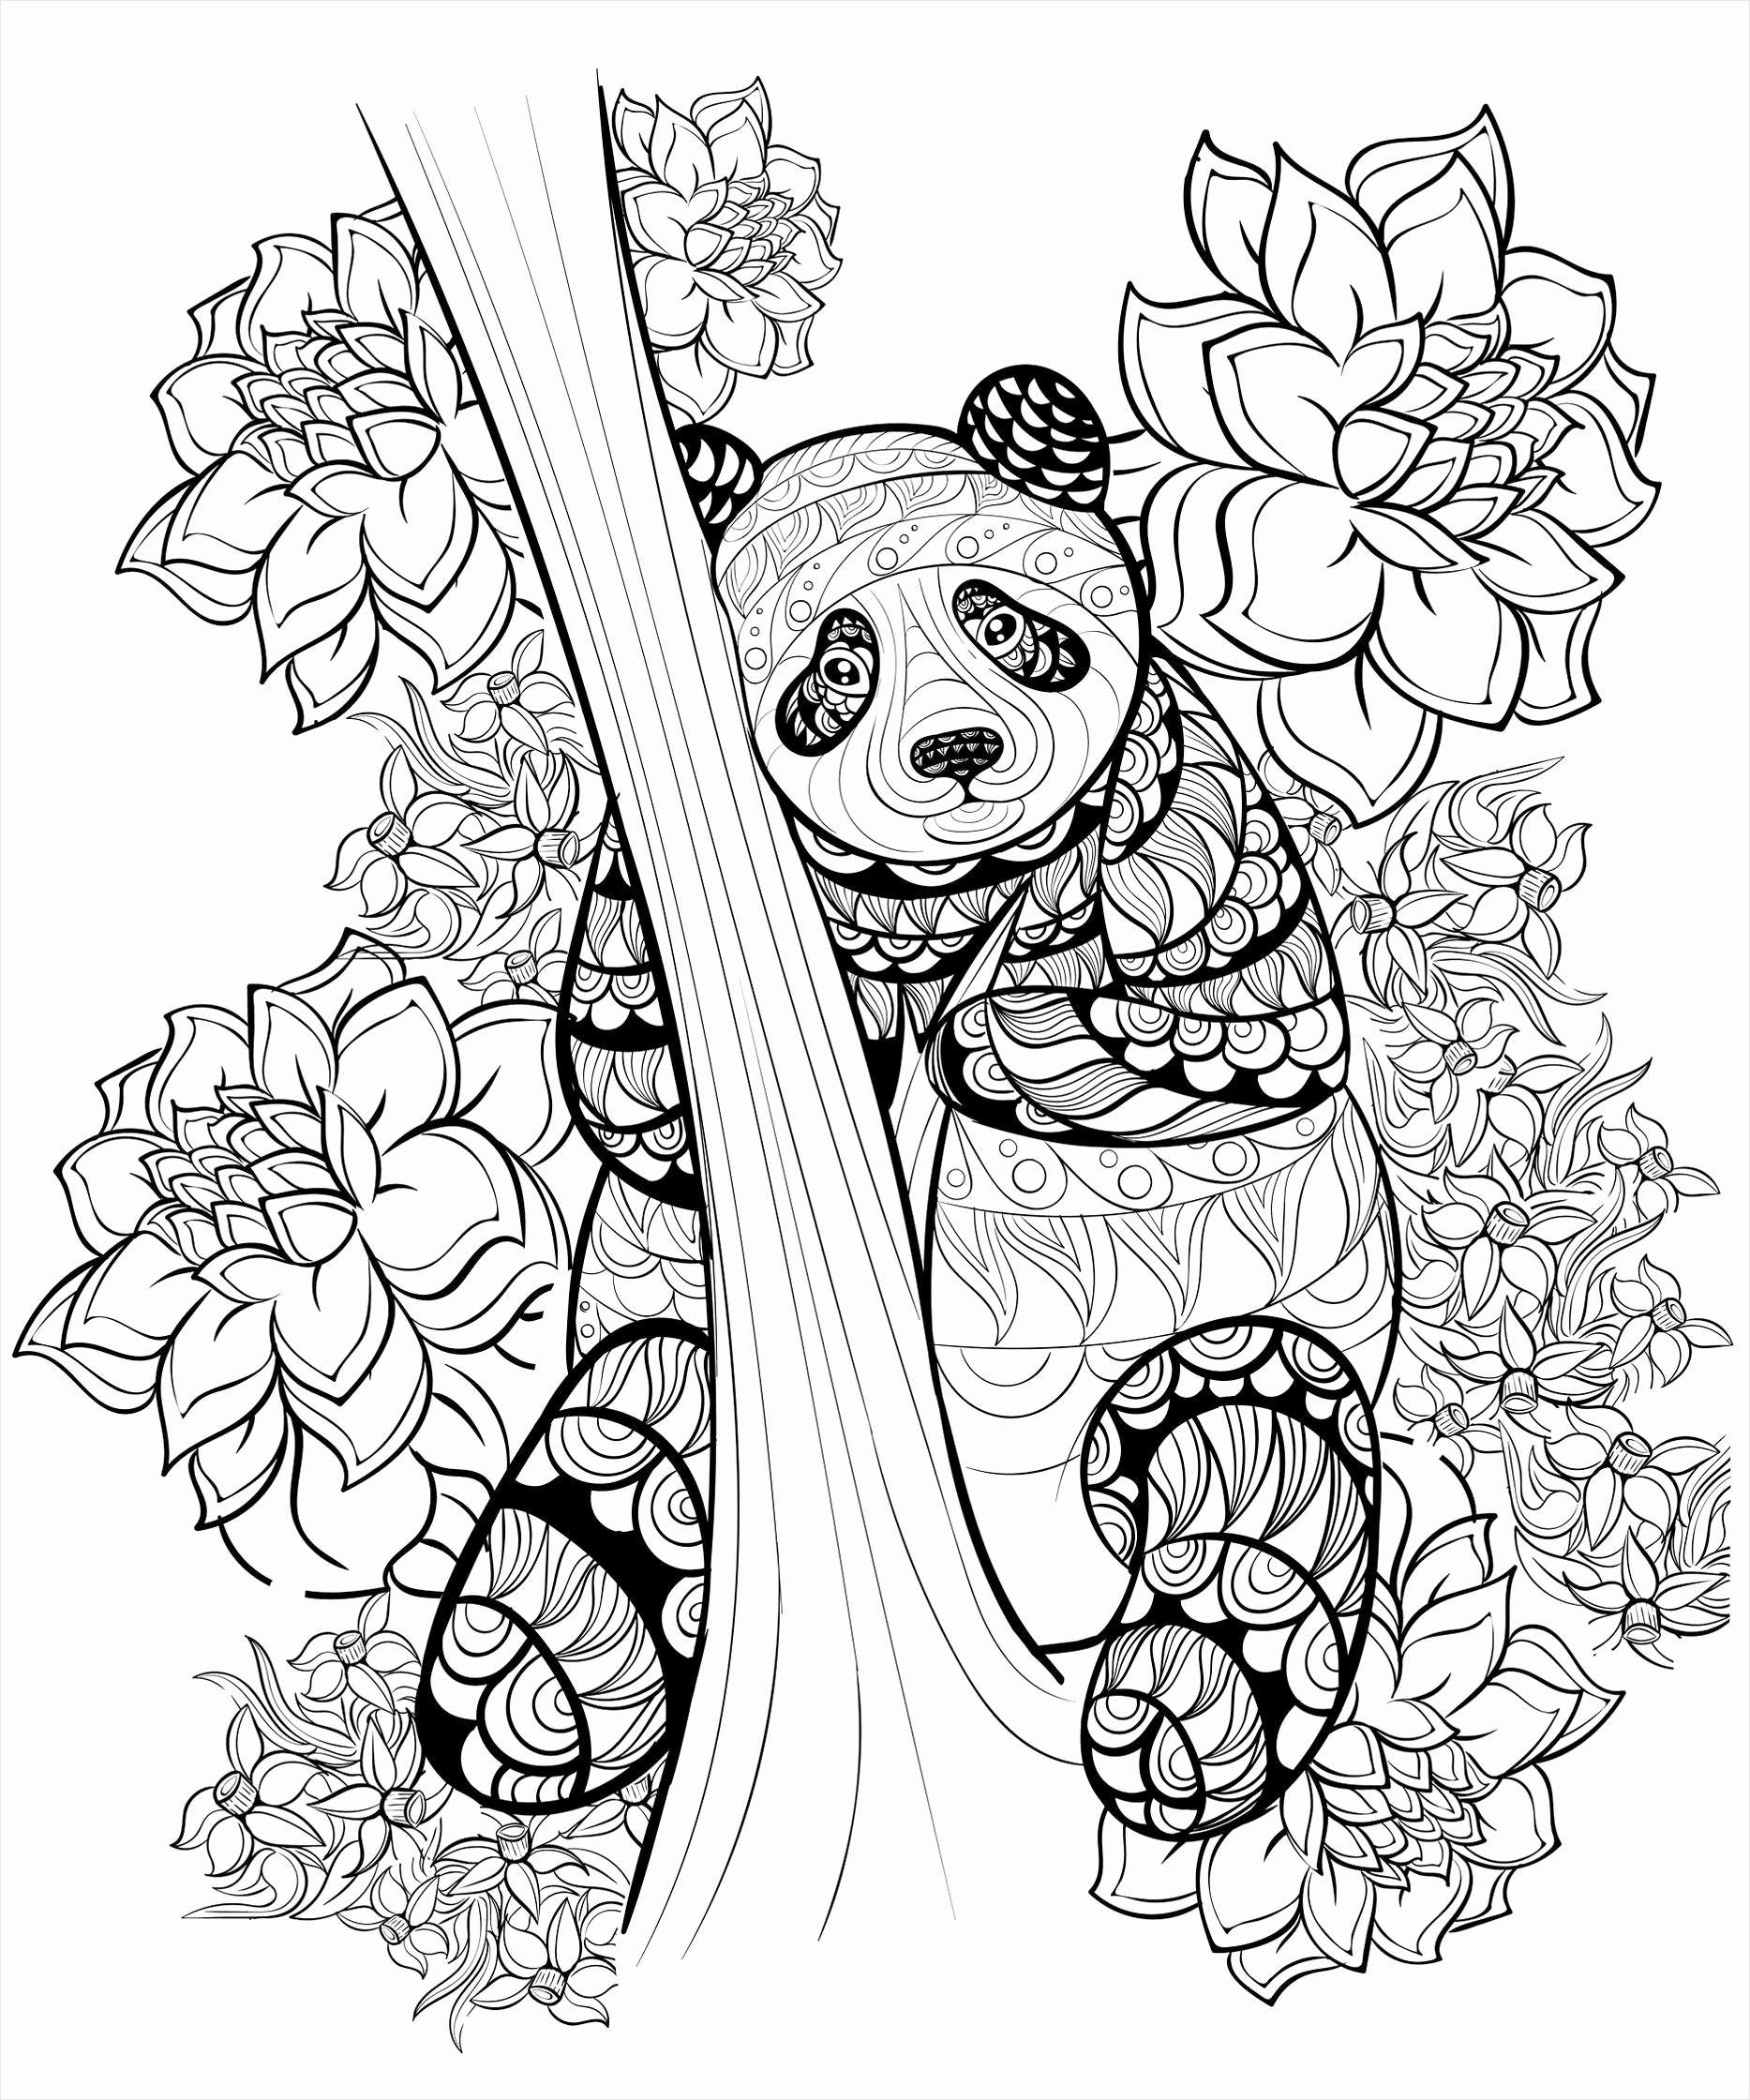 Printable Christmas Candles Coloring Pages With Tree For Kids